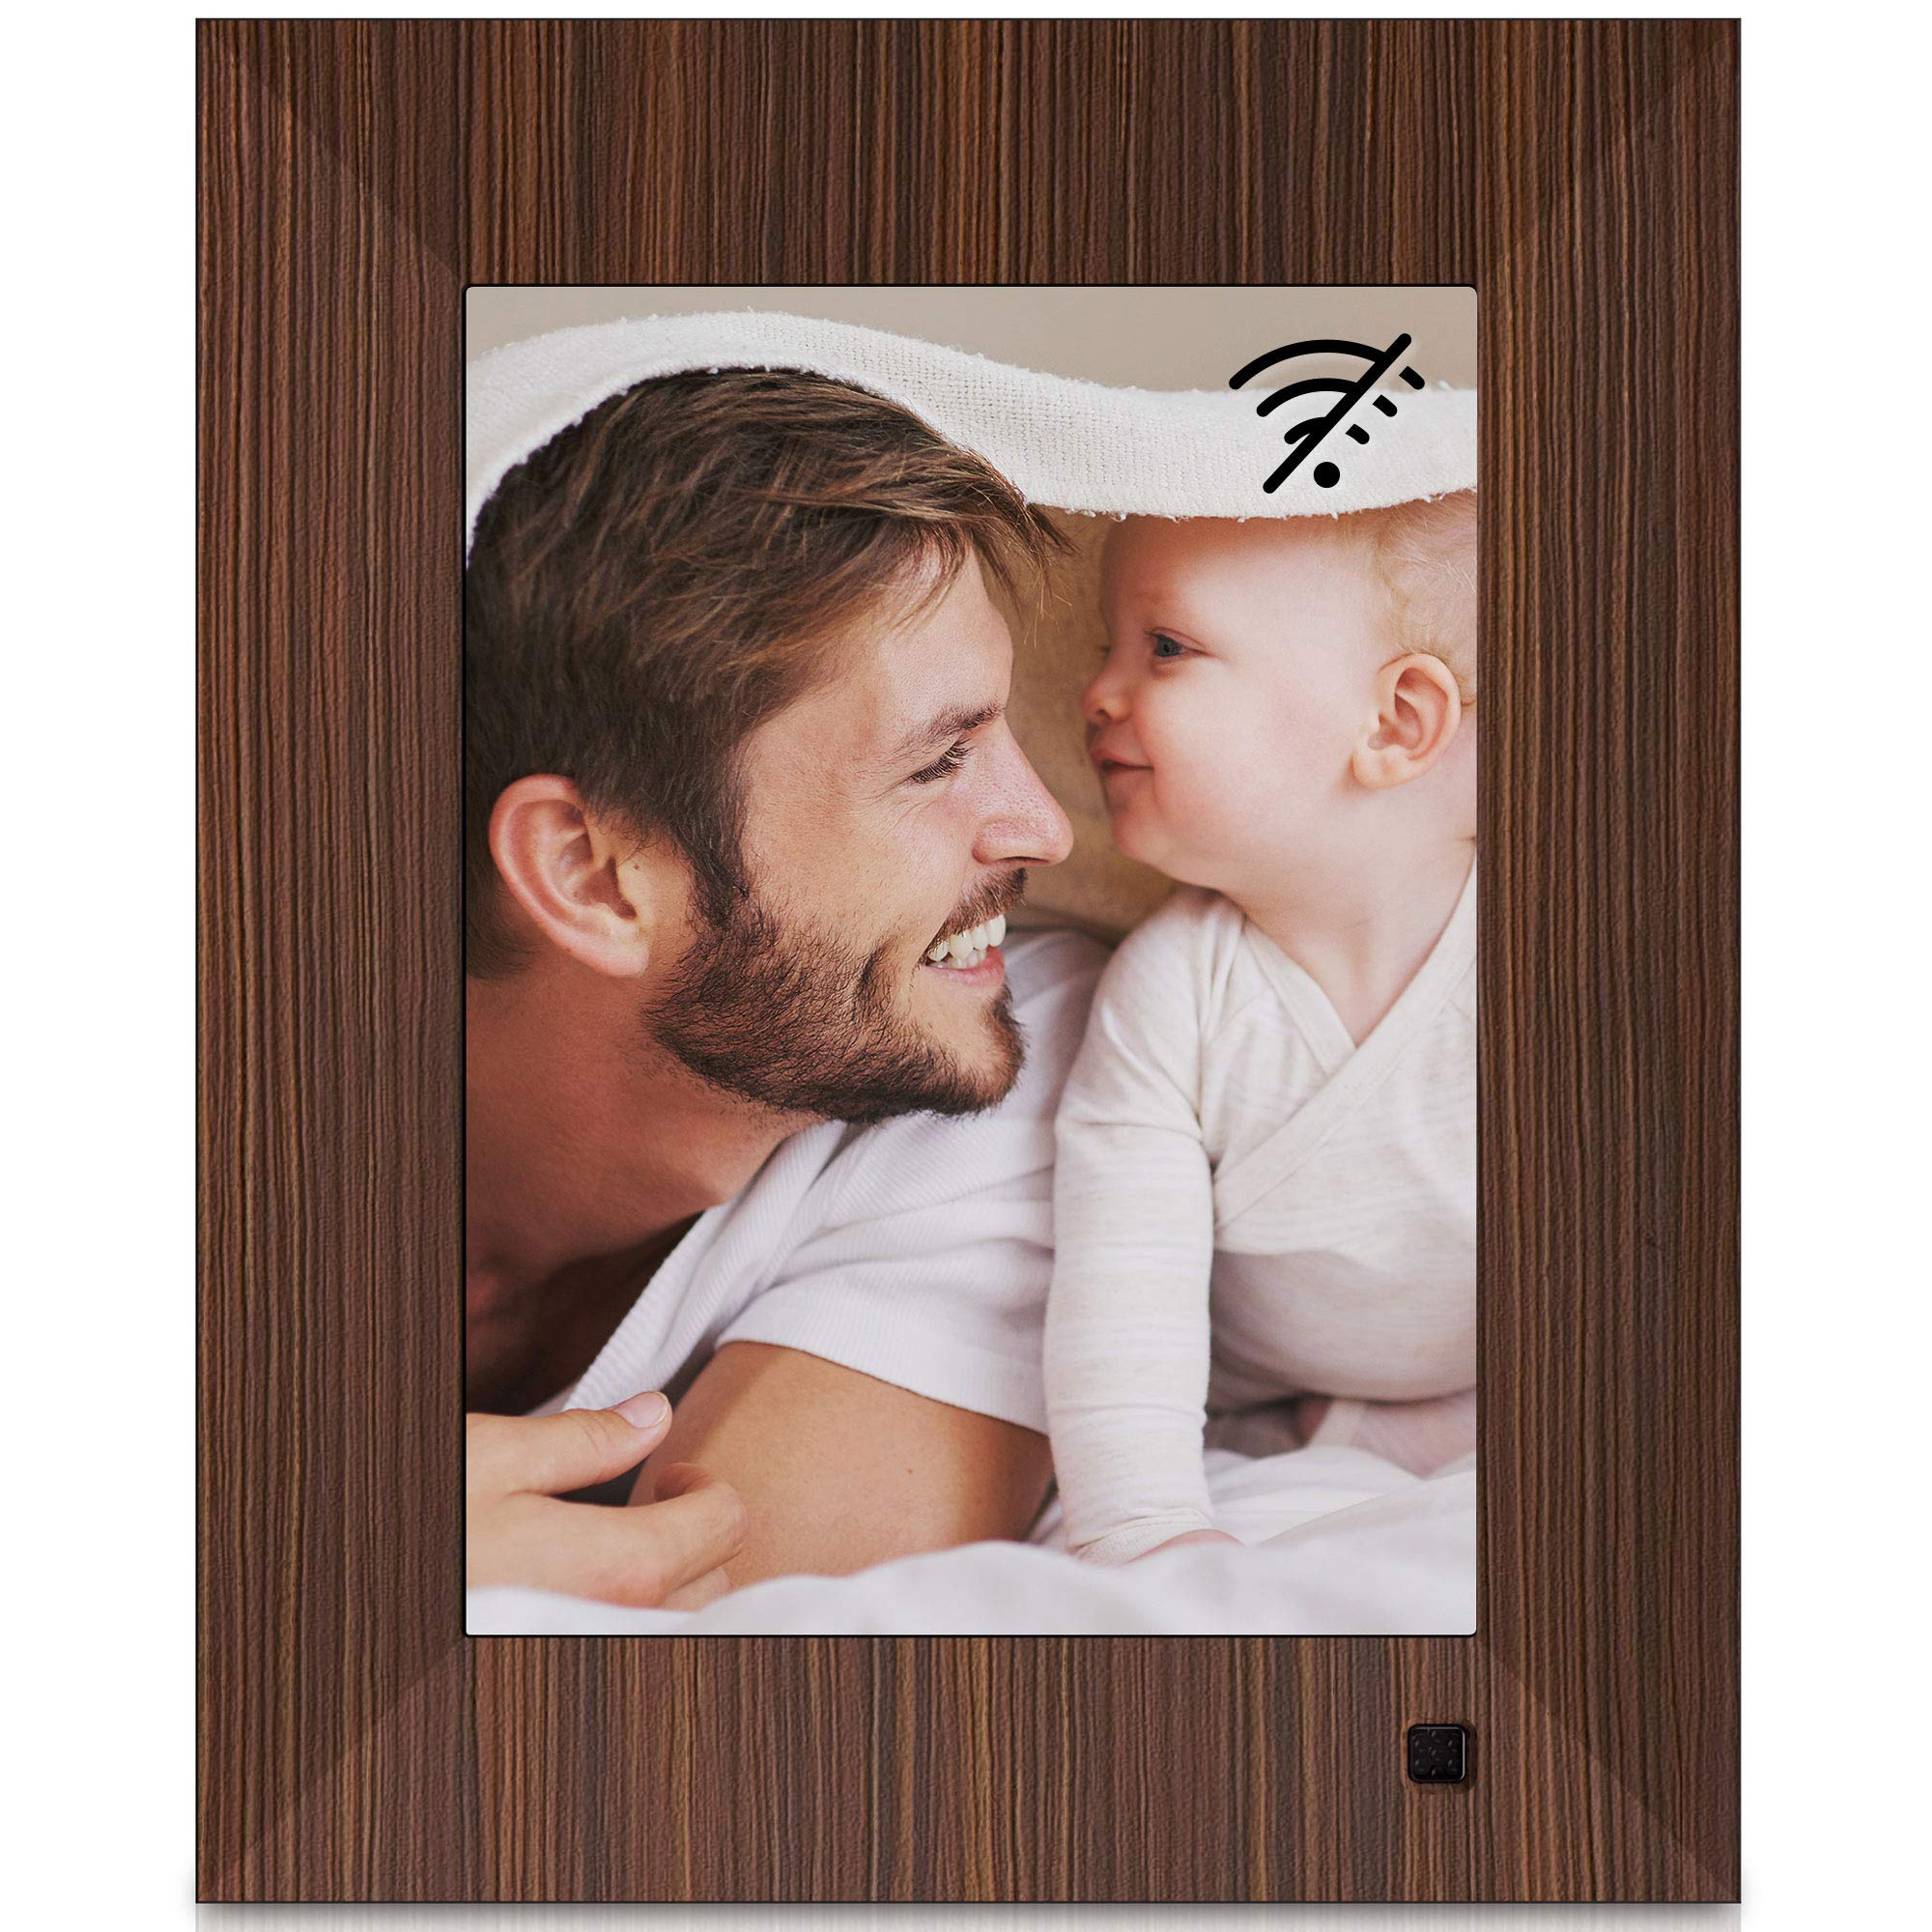 NIX Lux 8-Inch Digital Photo Frame X08F Wood (Non-WiFi) - Wall-Mountable Digital Frame with 1024x768 XGA IPS Display, Motion Sensor, USB and SD Card Slots and Remote Control, 8 GB USB Stick Included by NIX